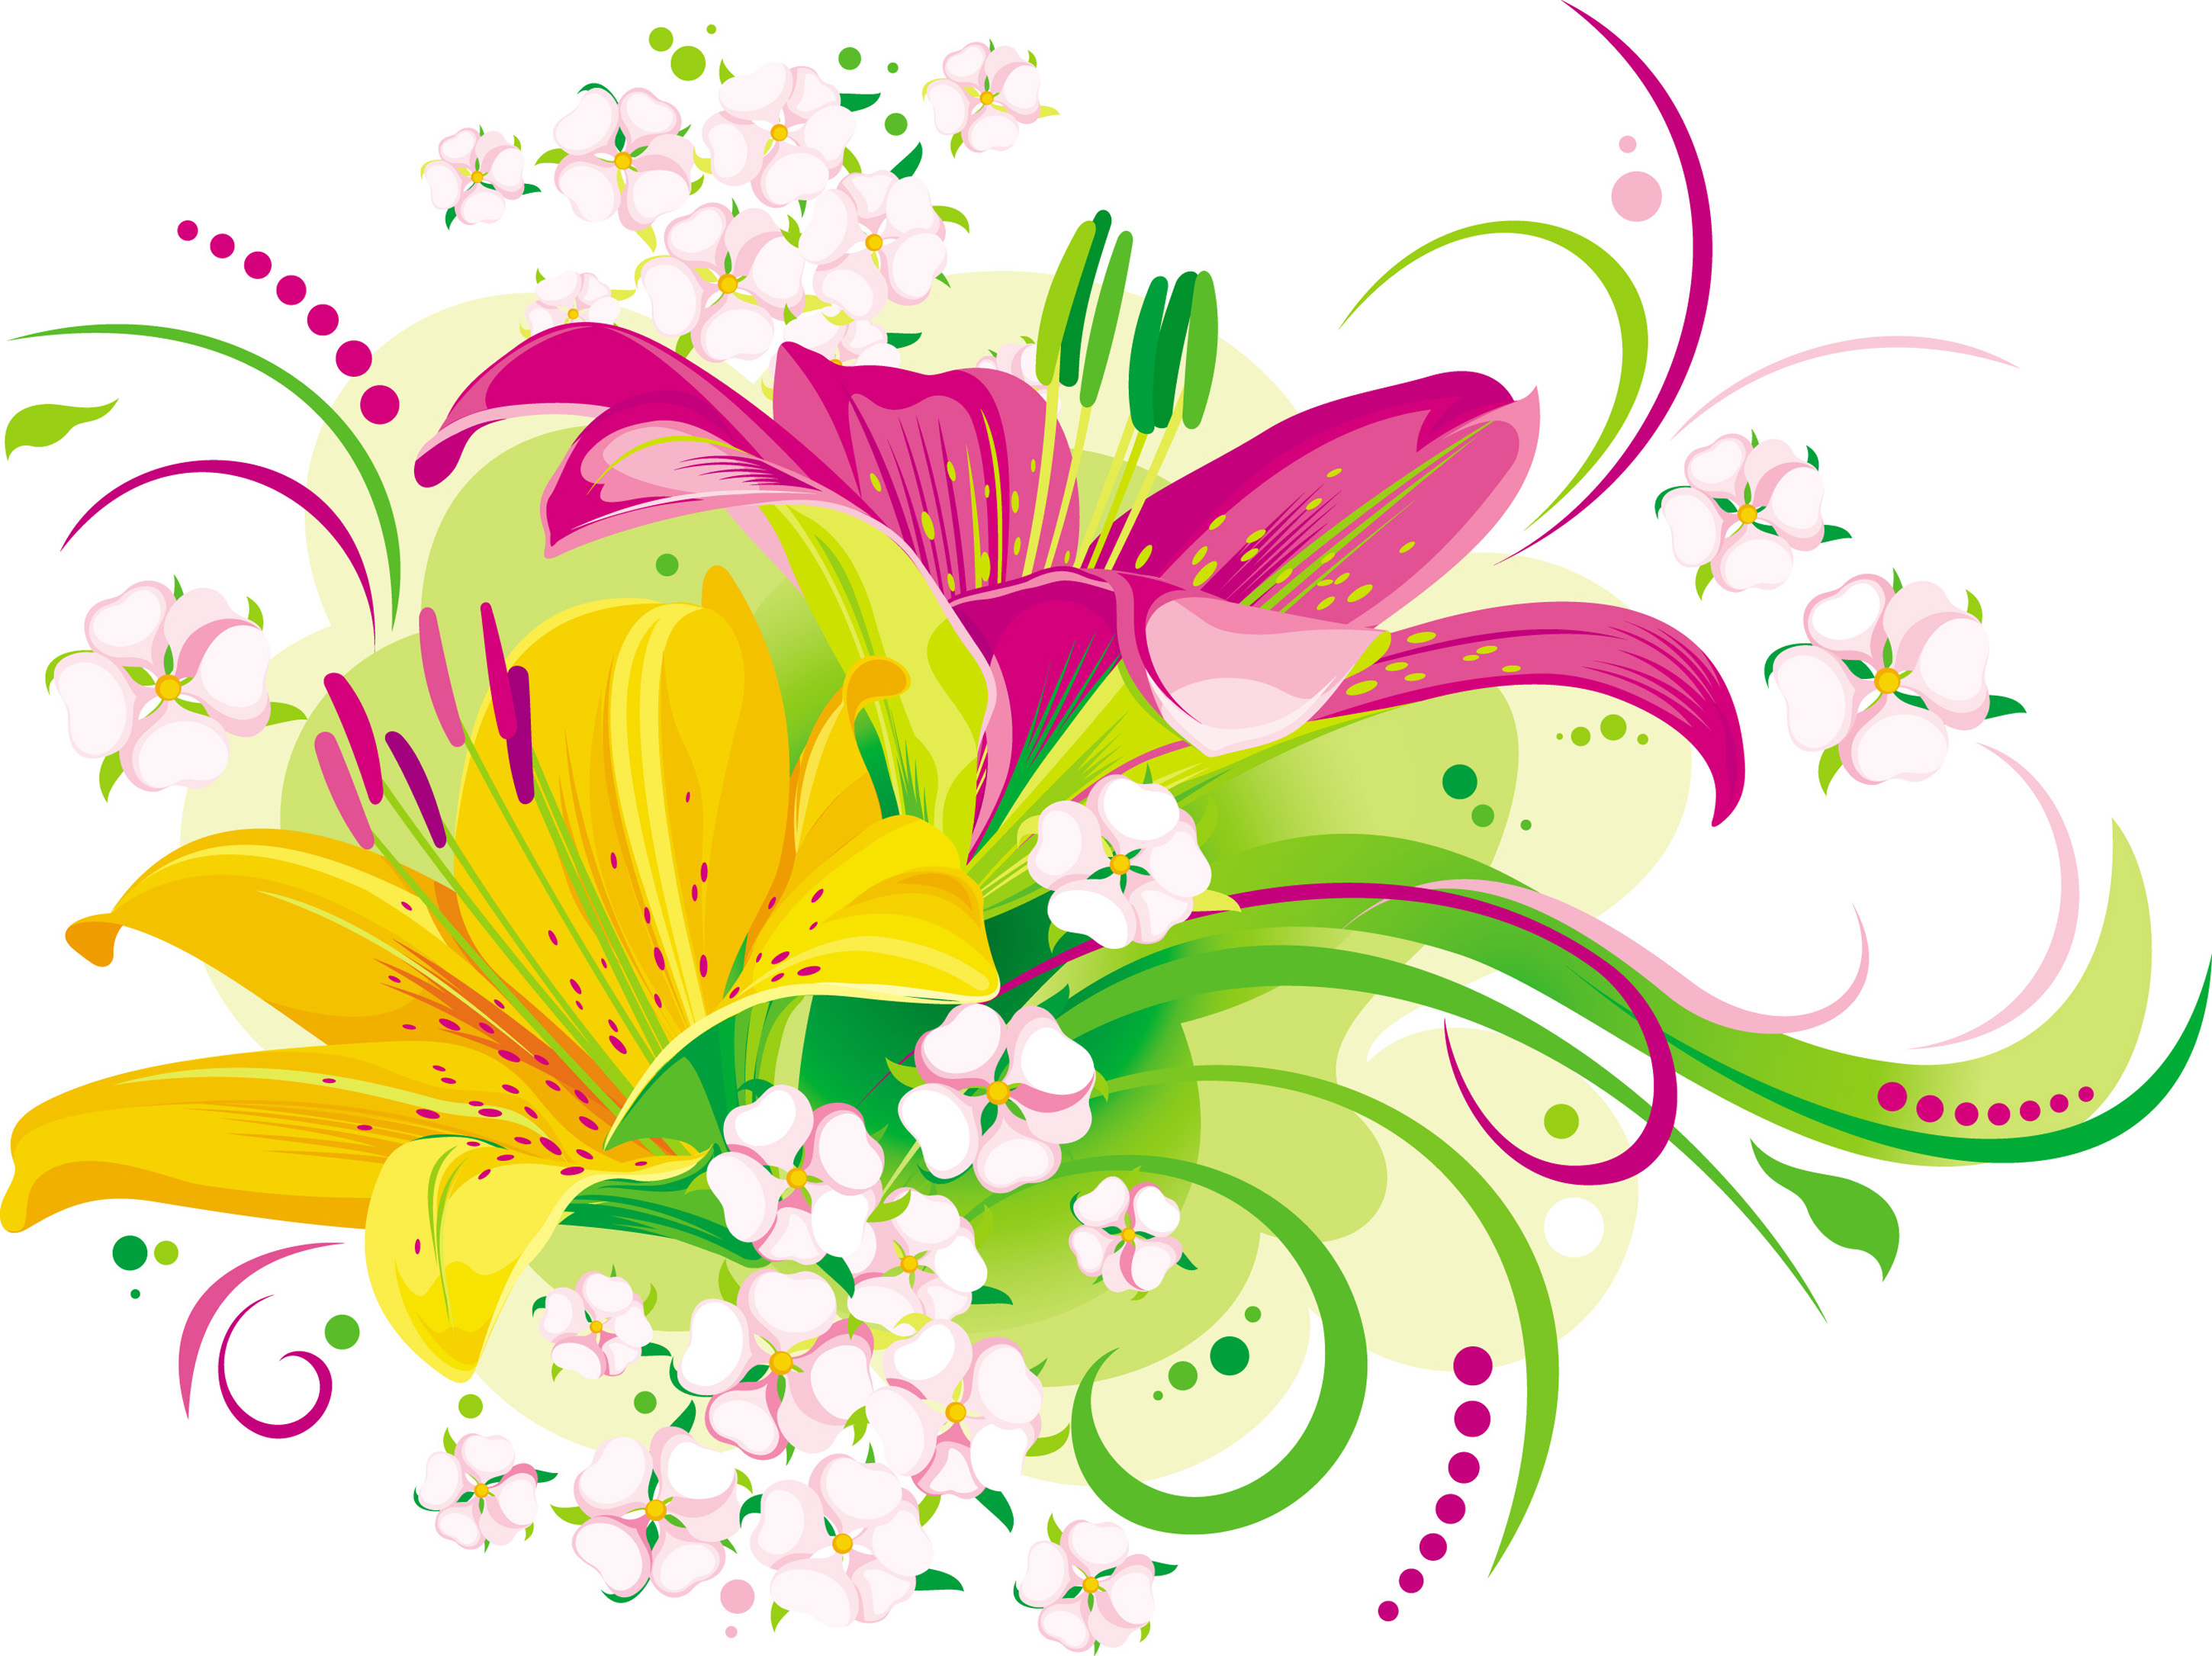 Line Art clipart flower wallpaper X x lilies and and